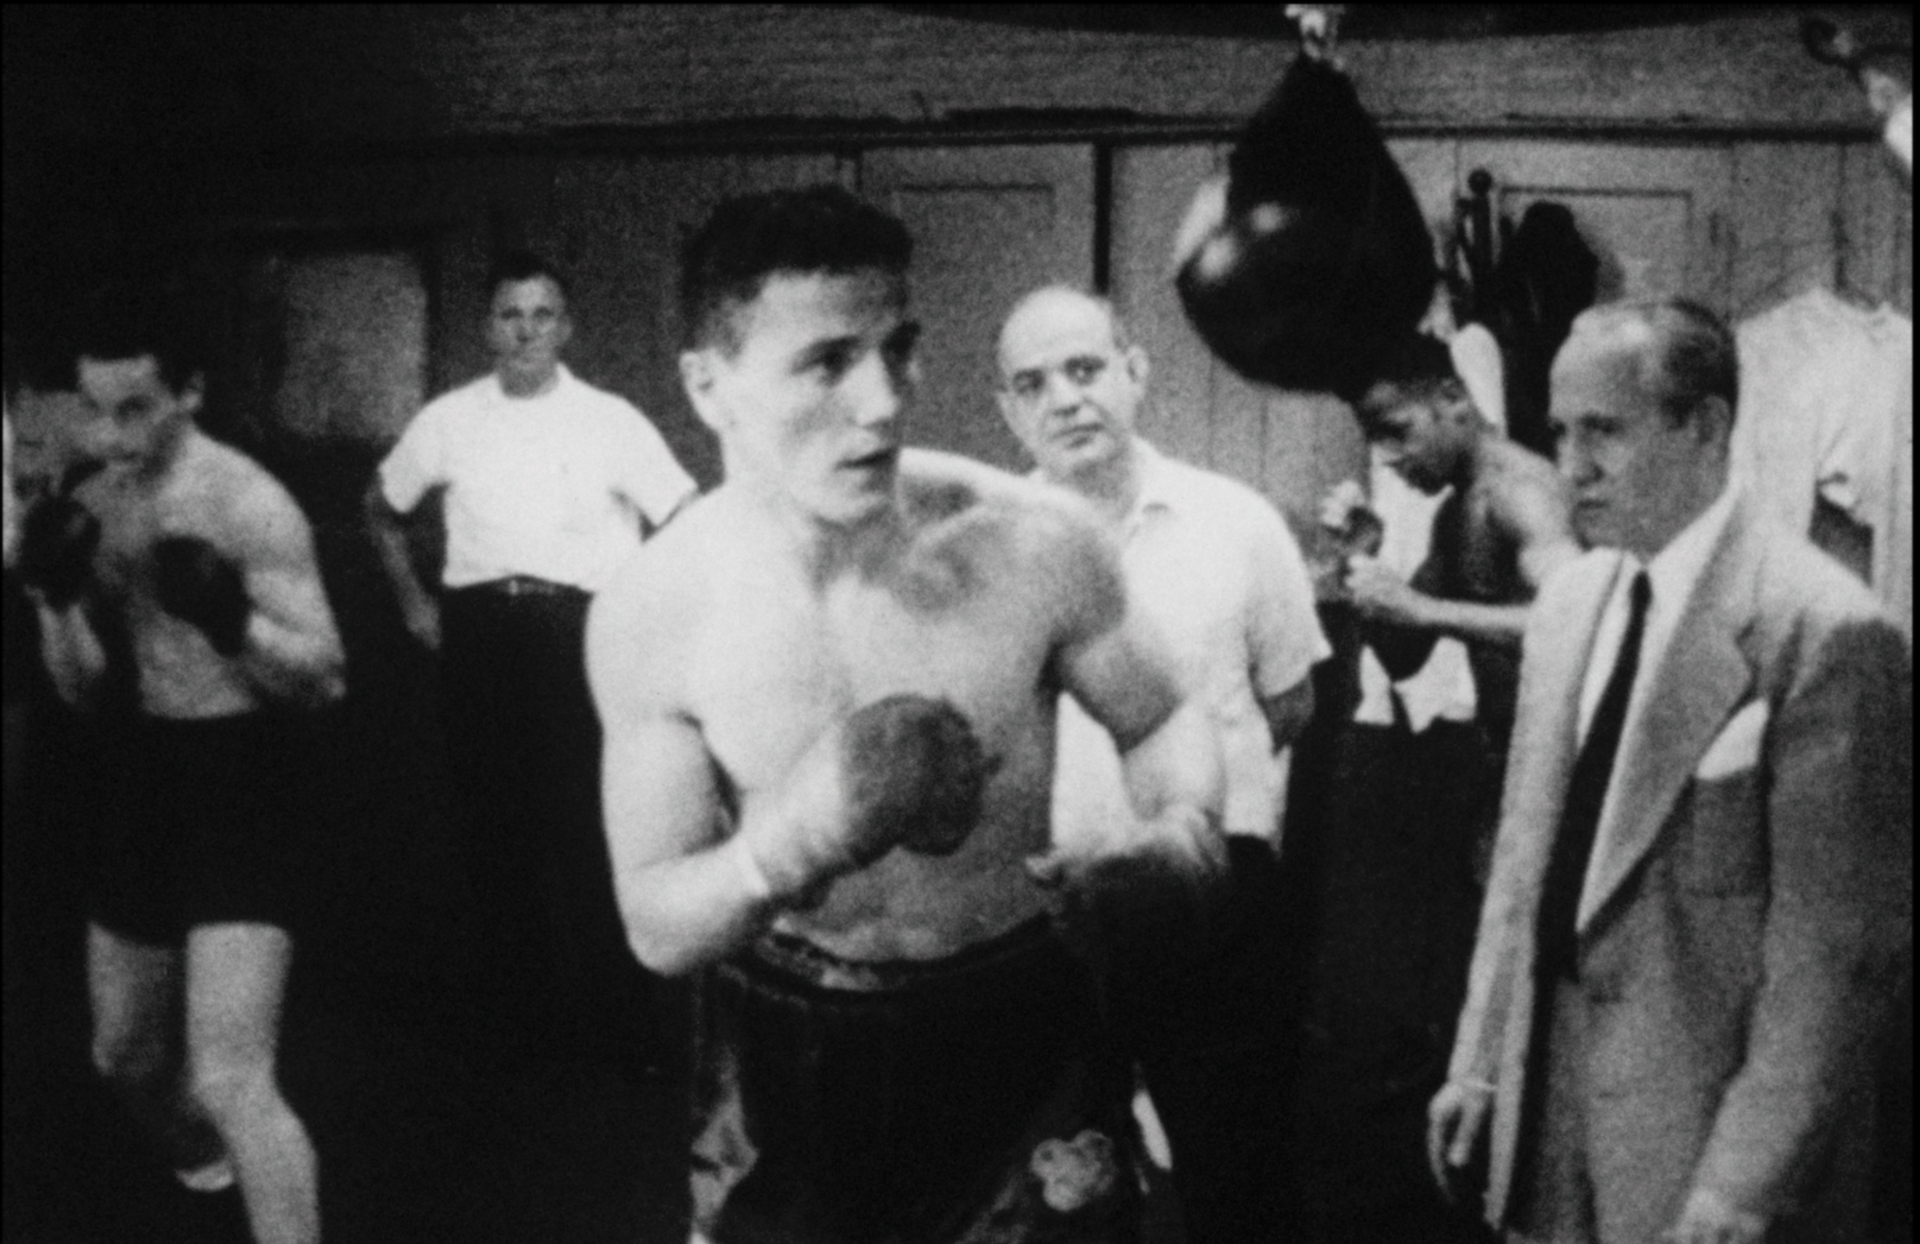 Still from Young Fighter